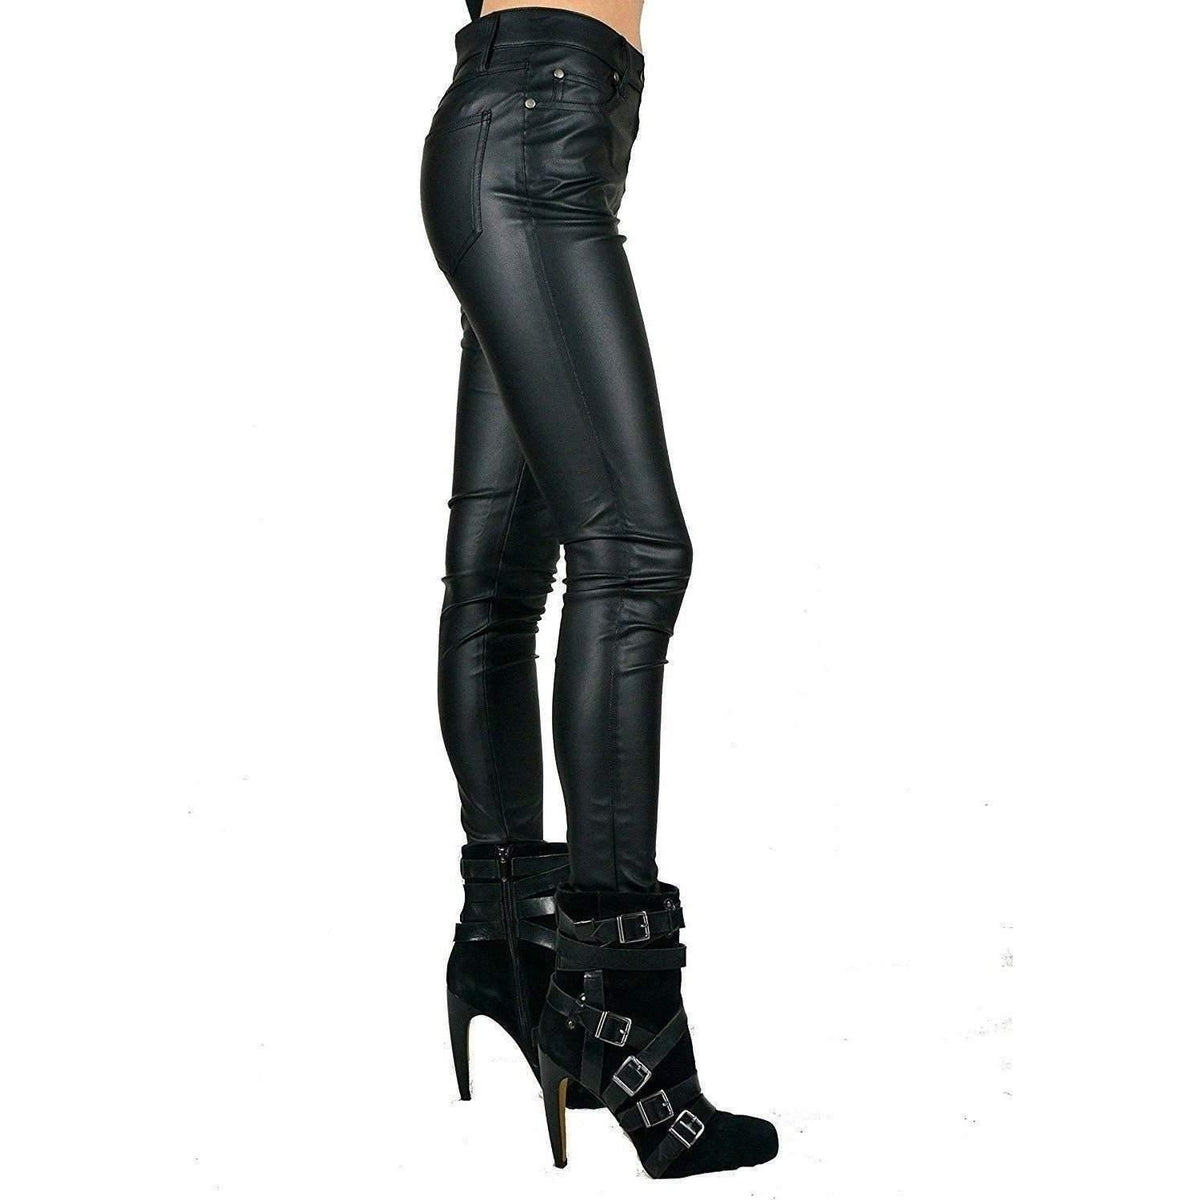 LIP SERVICE 5 POCKET PEG LEG VEGIE BLACK JEANS IN PVC